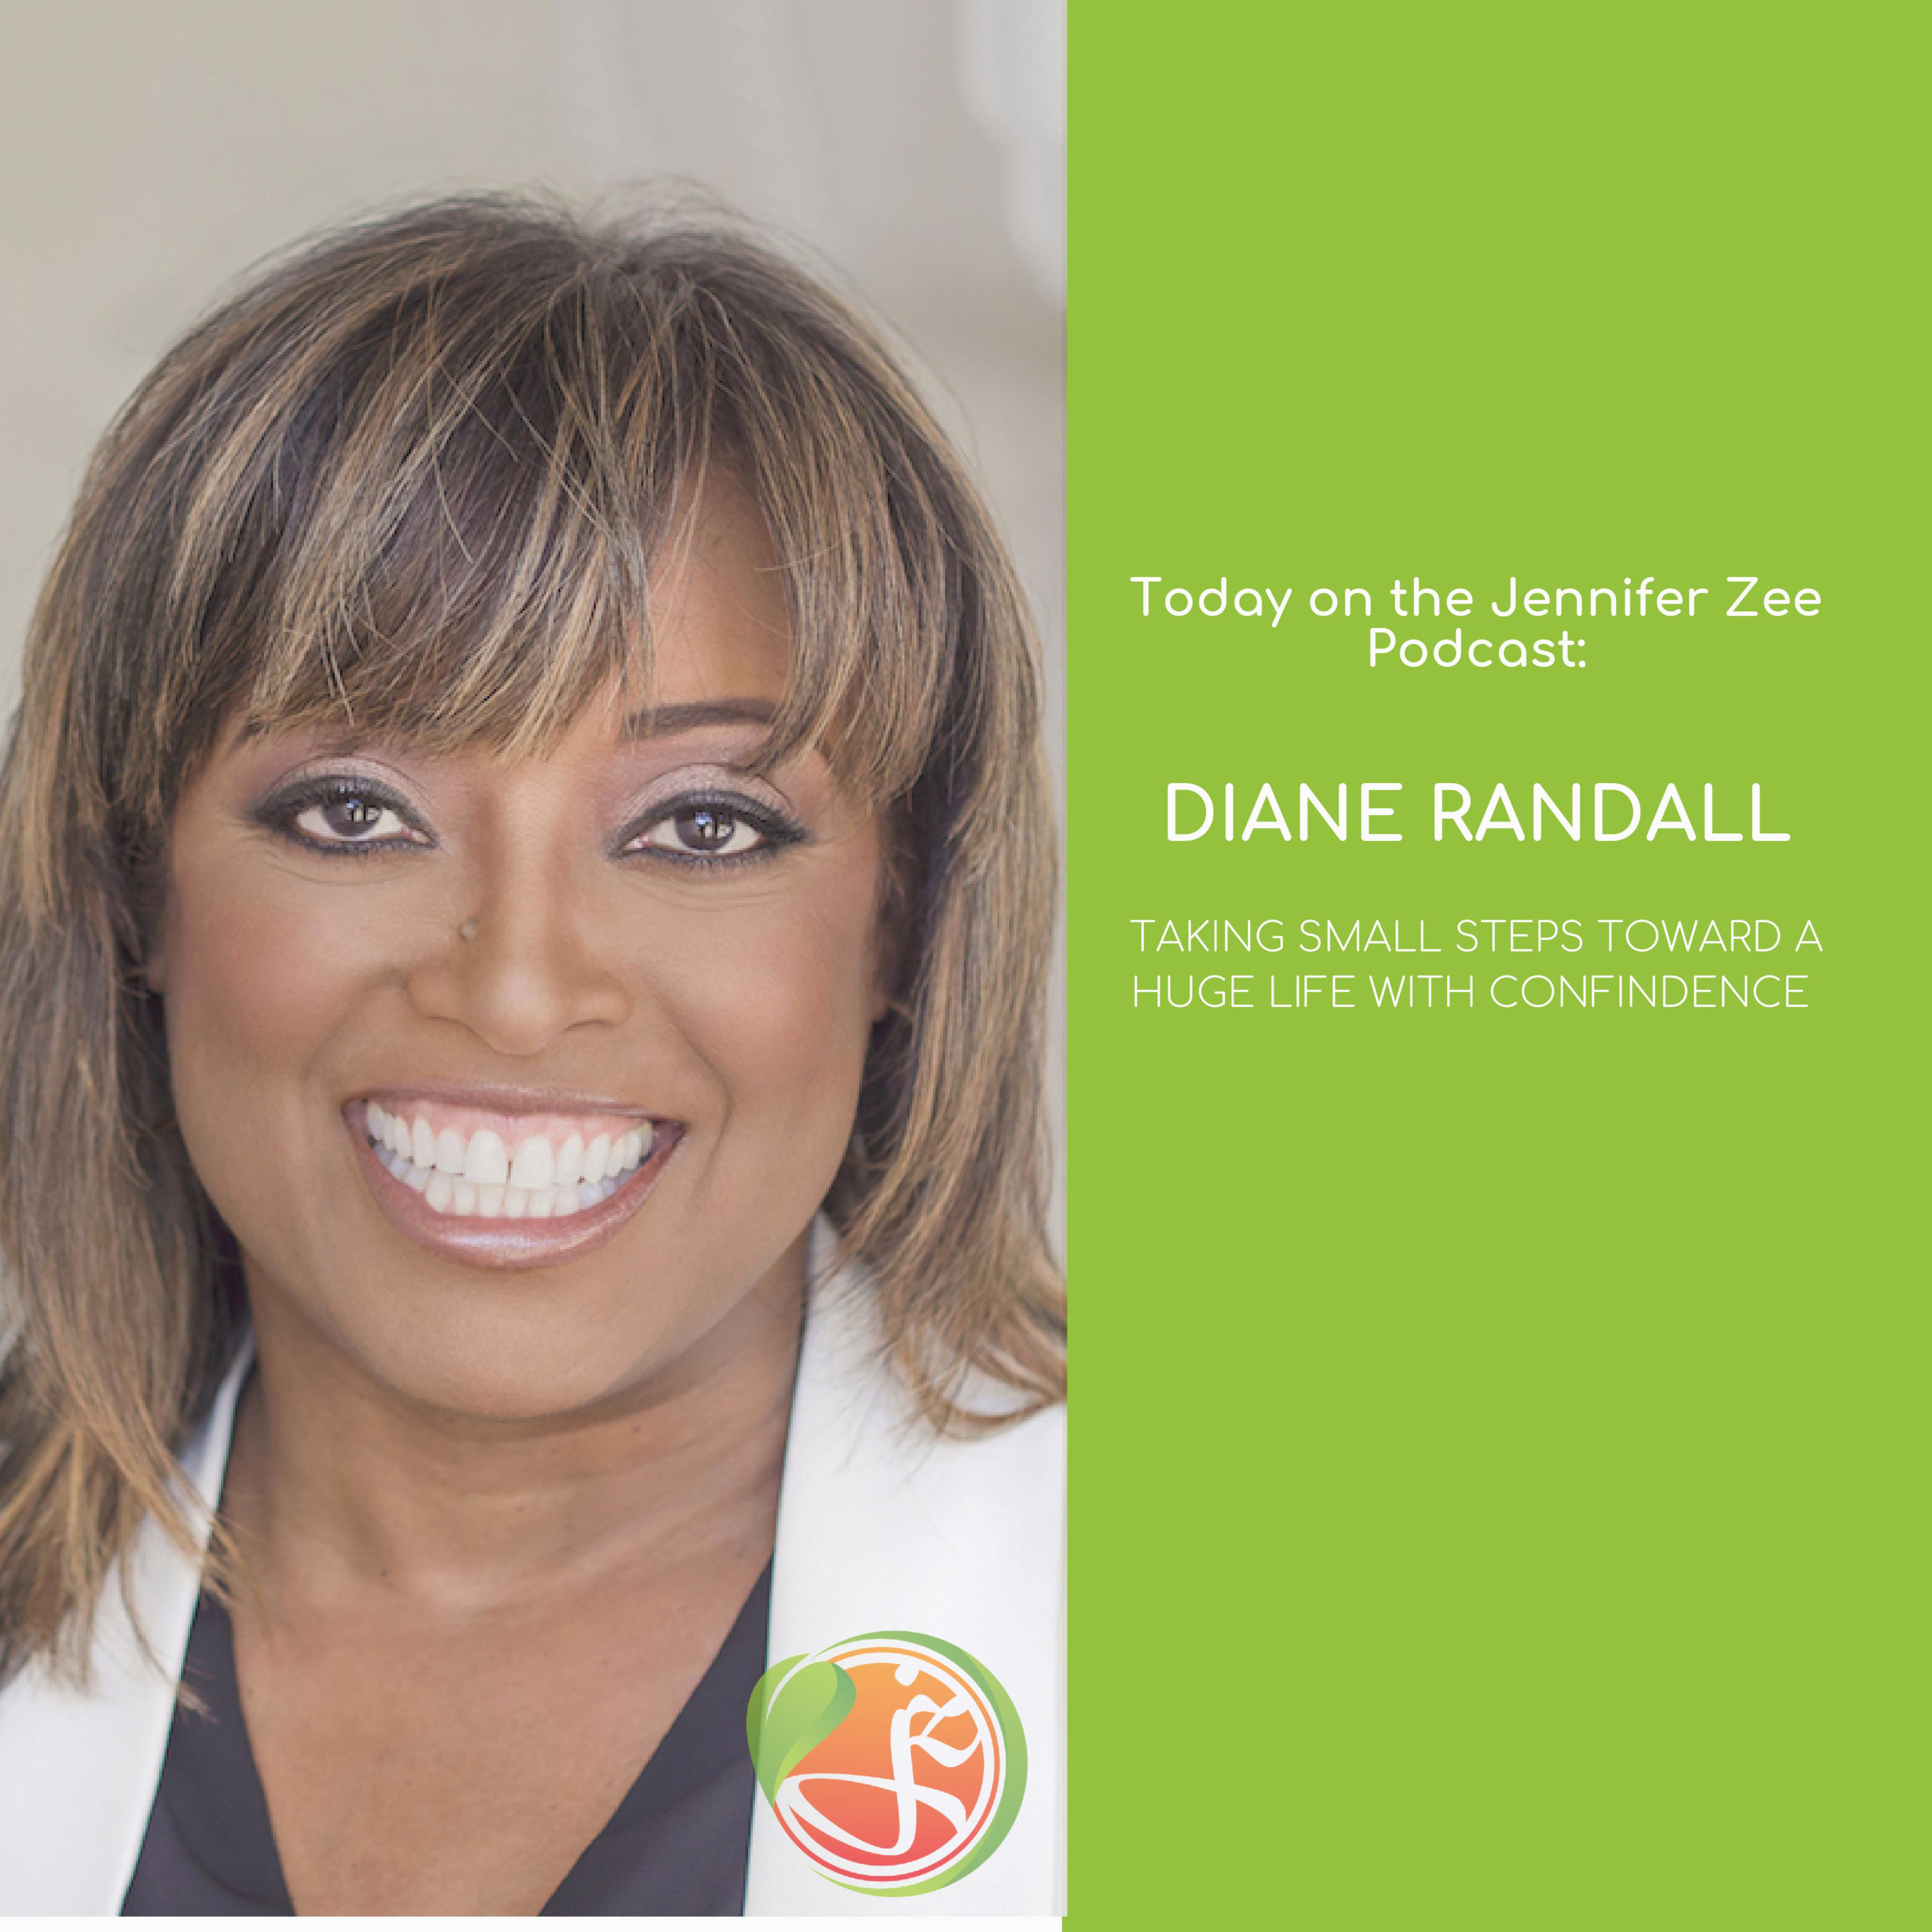 Taking Small Steps Toward a Huge Life with Confidence - with Diane Randall